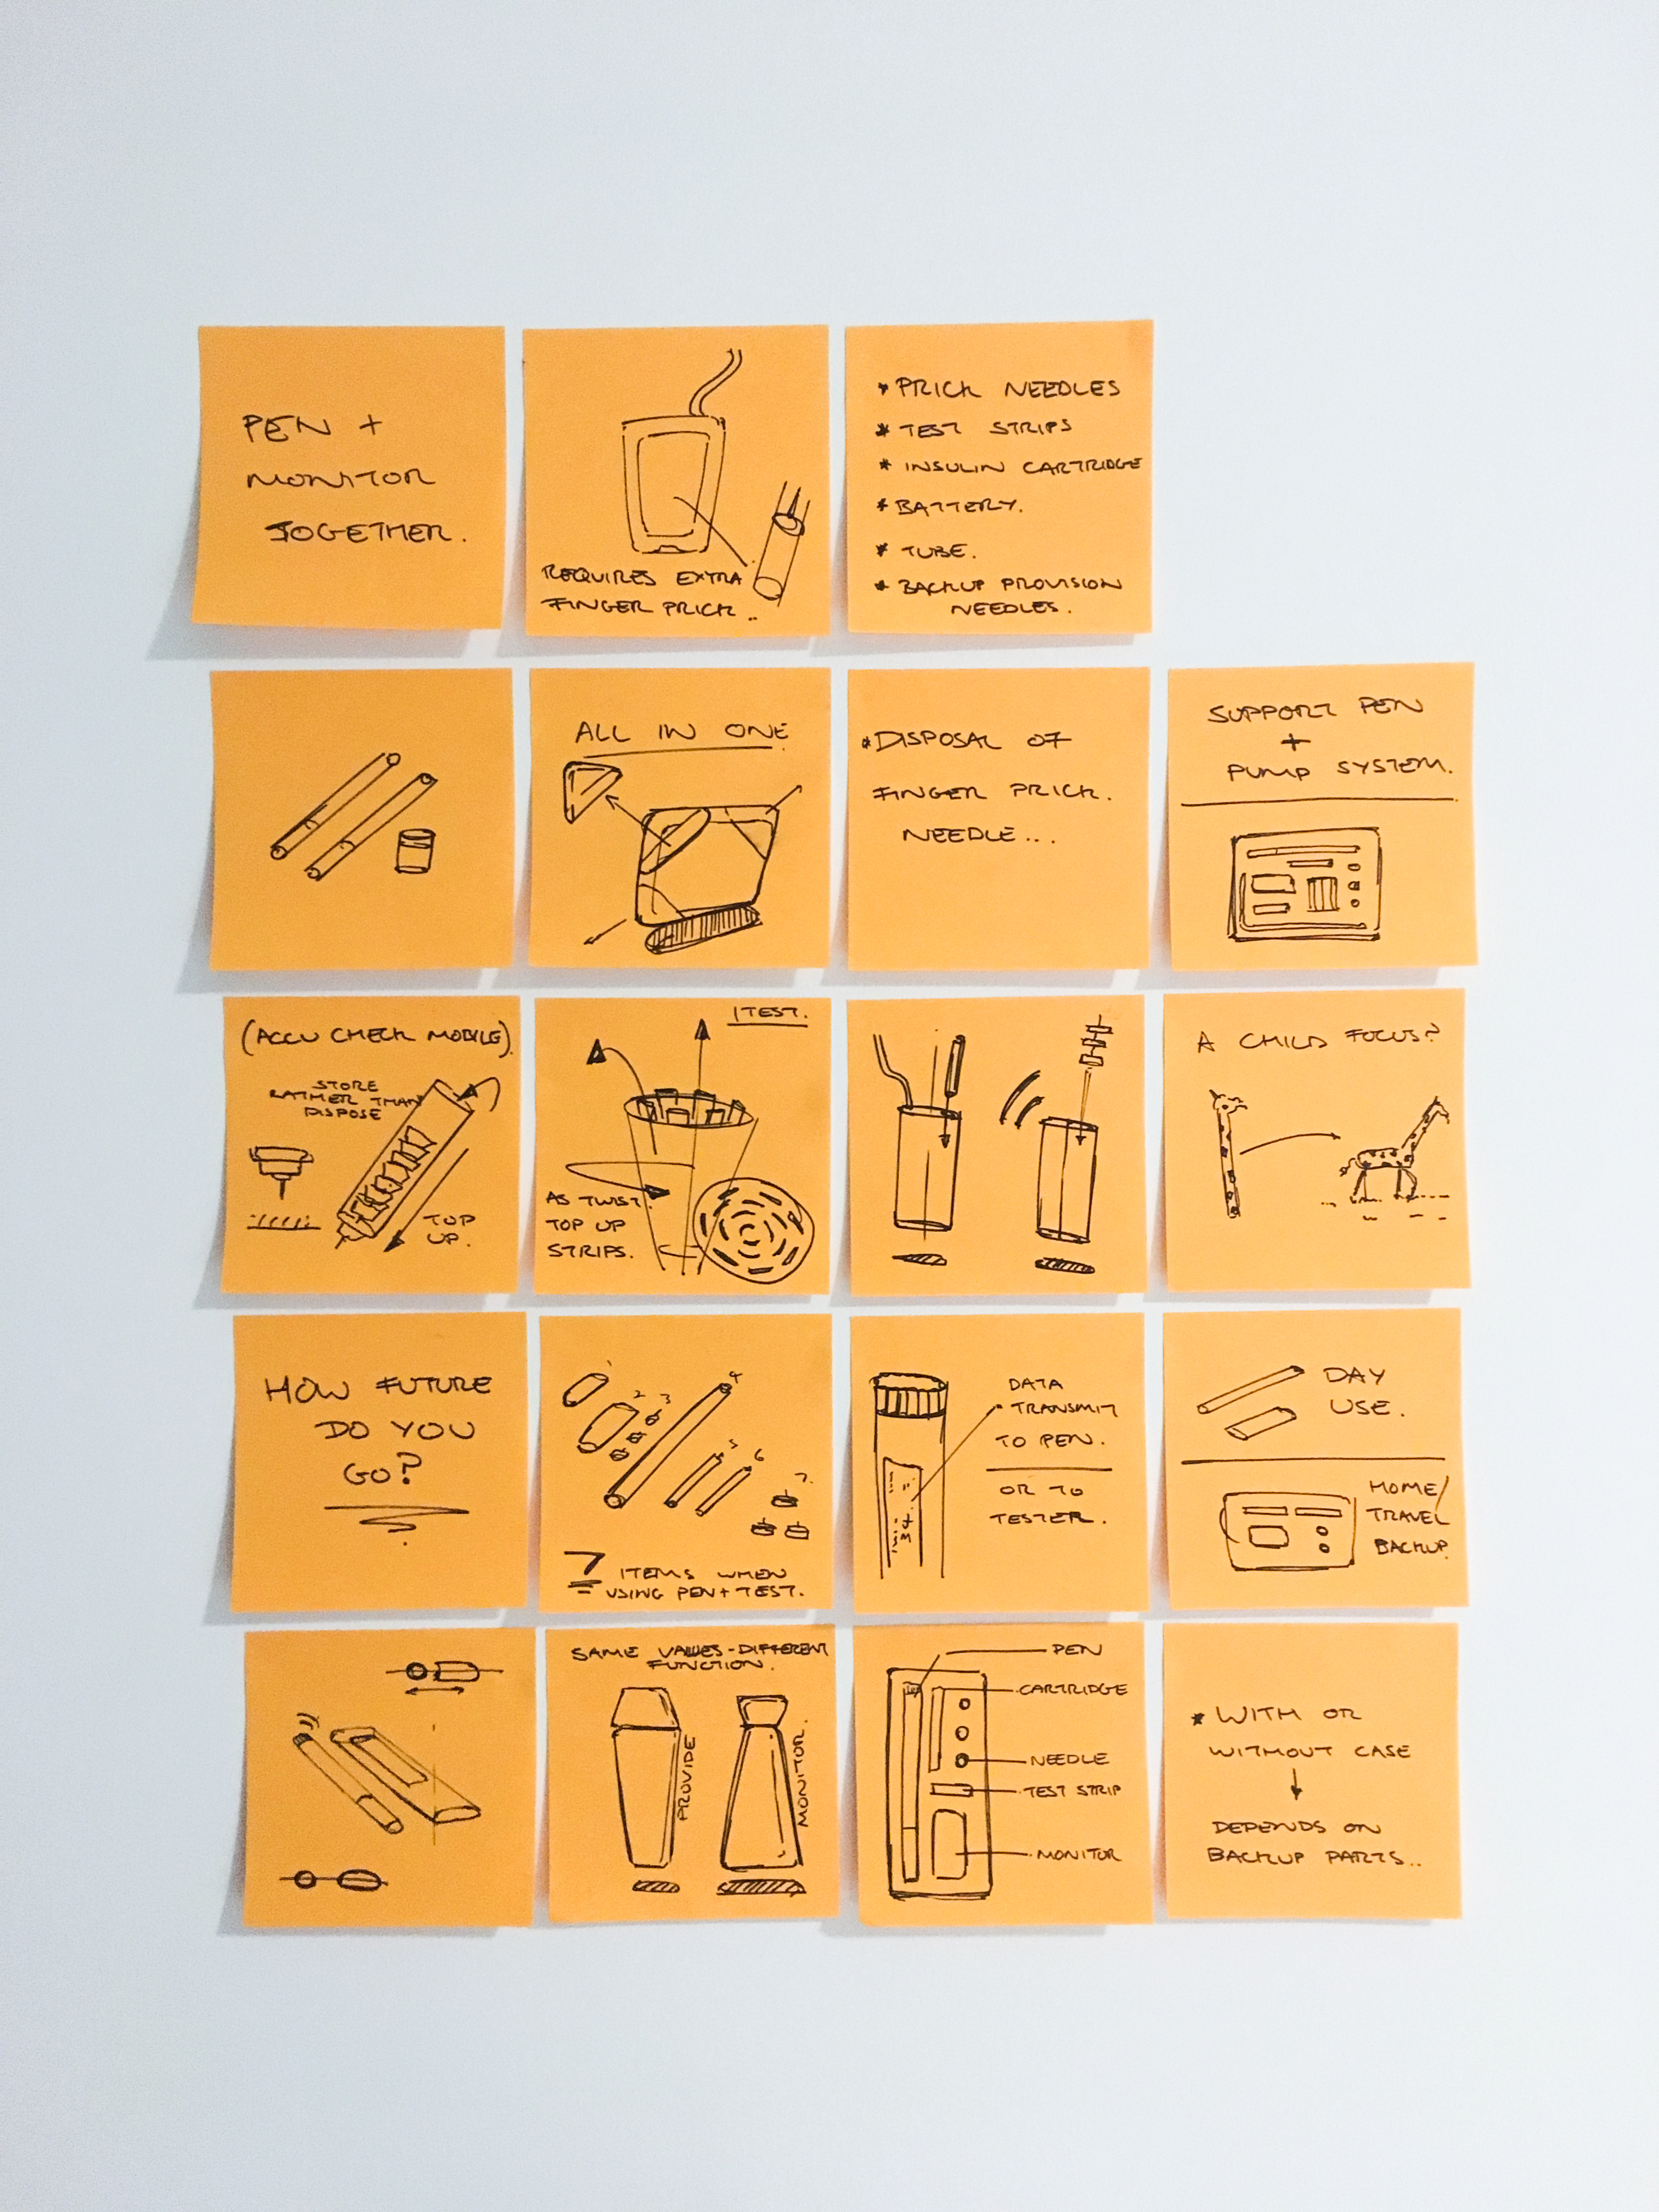 Post it ideation- diabetes kit